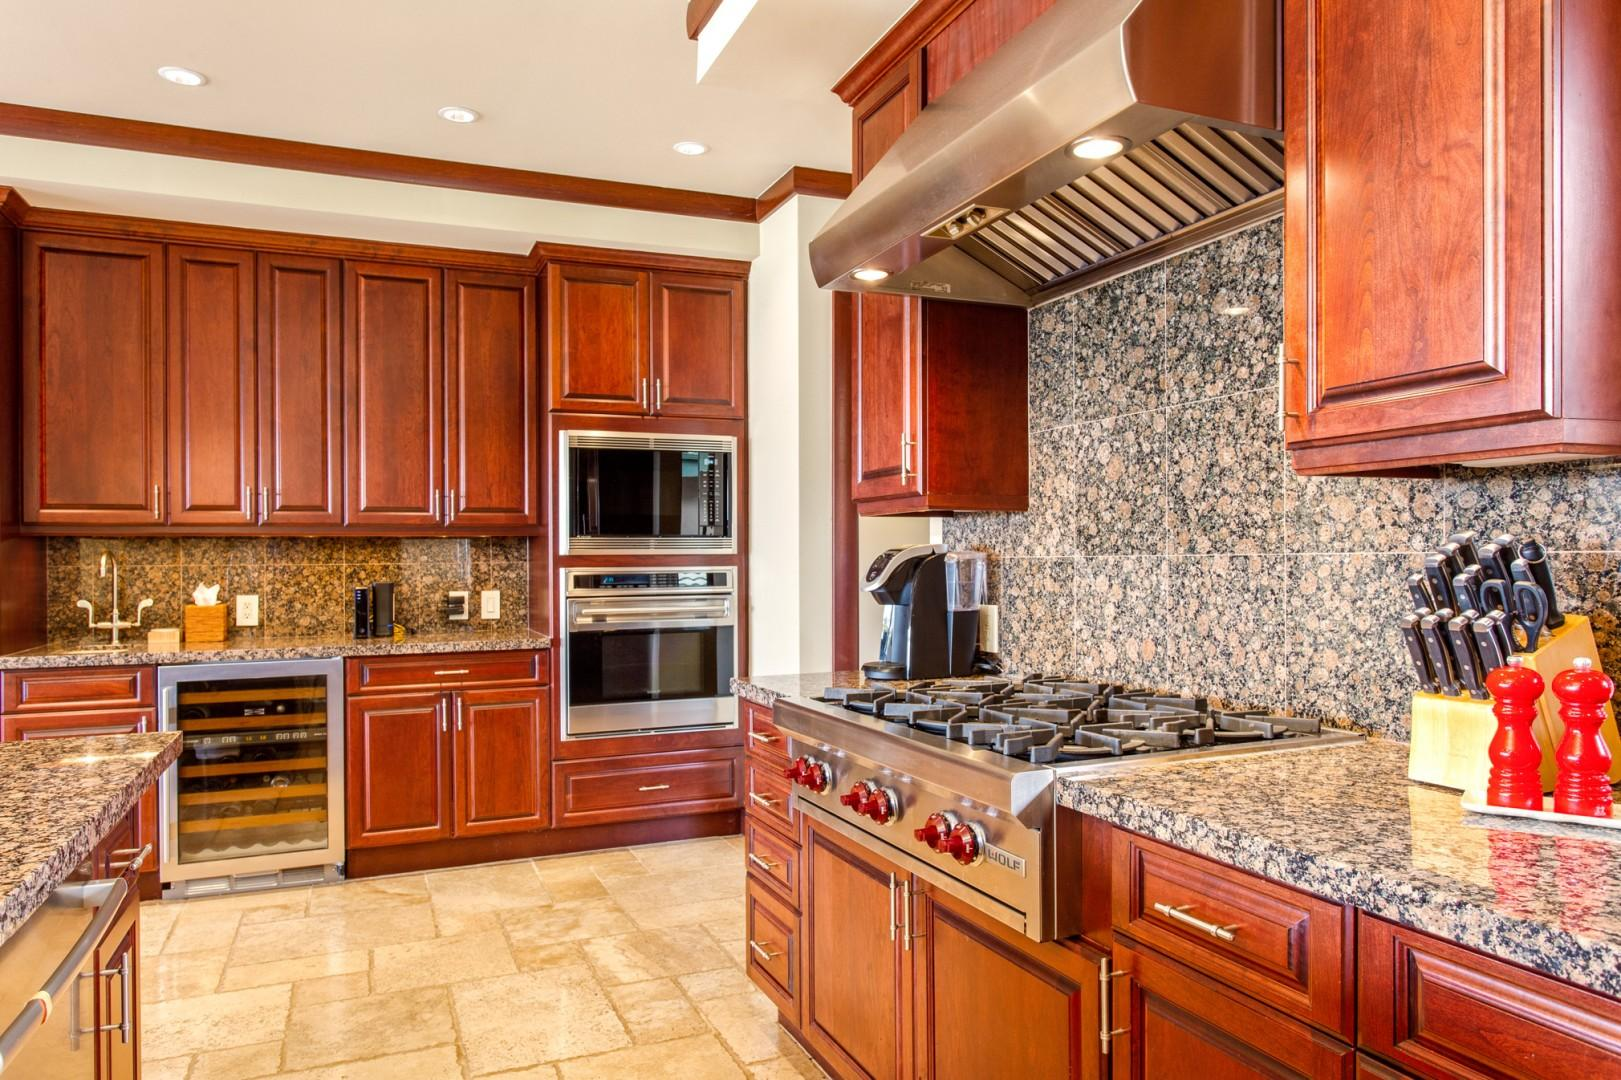 Top tier appliances, a 6-burner gas range, and a wine fridge to delight any chef!